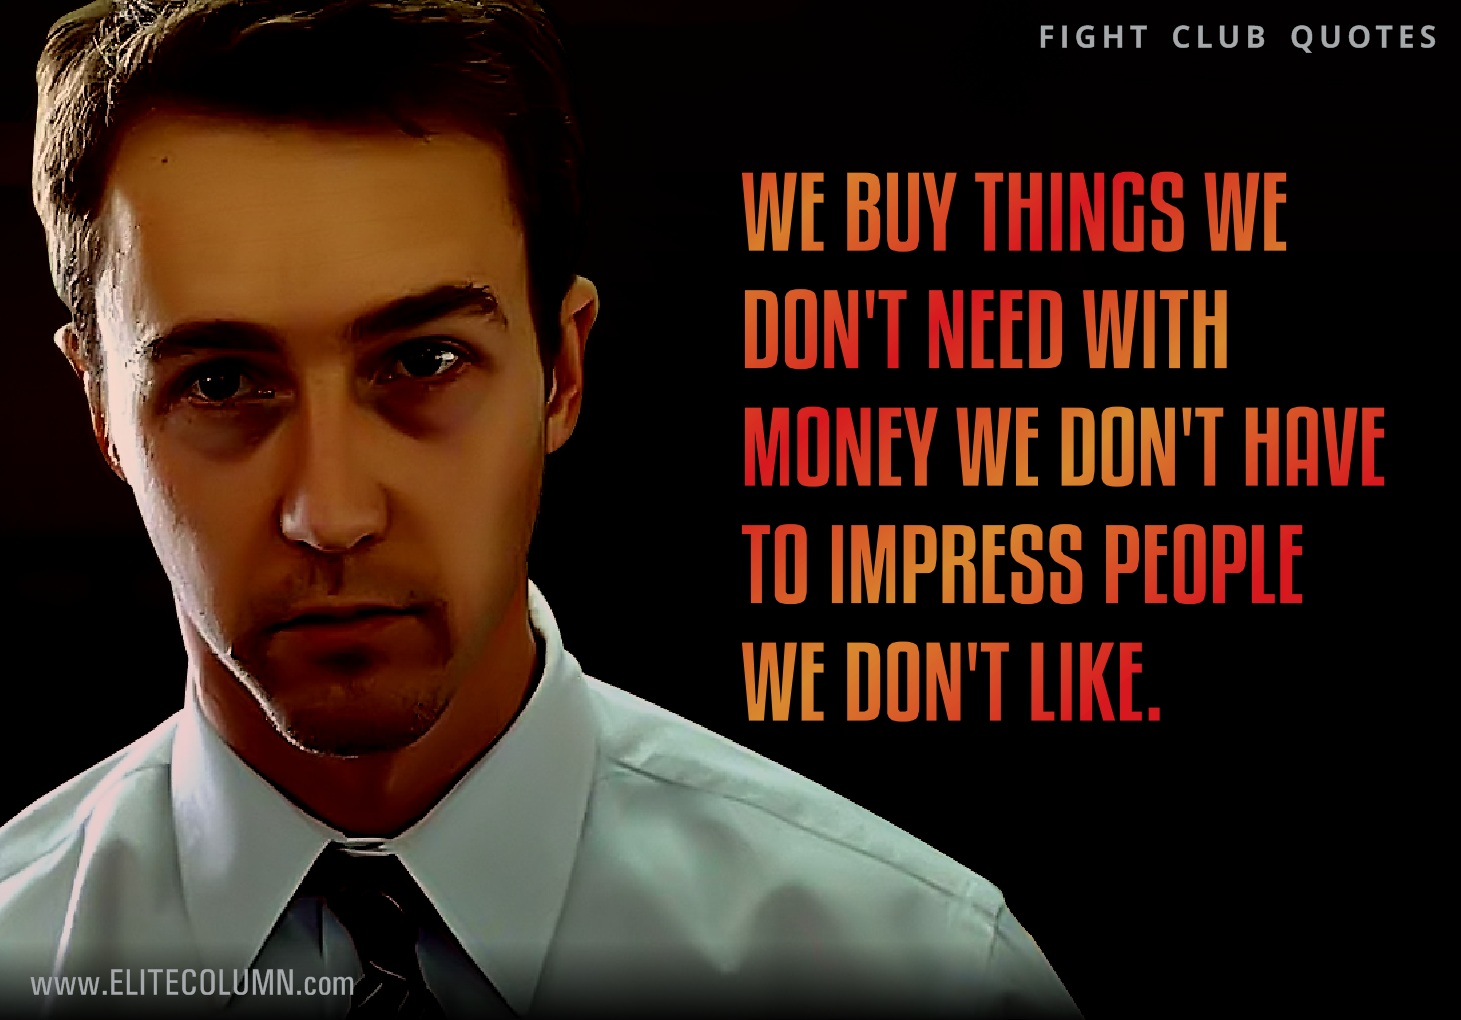 Fight Club Quotes 12 Best Fight Club Quotes To Give It Back To Your Enemies  Fight Club Quotes